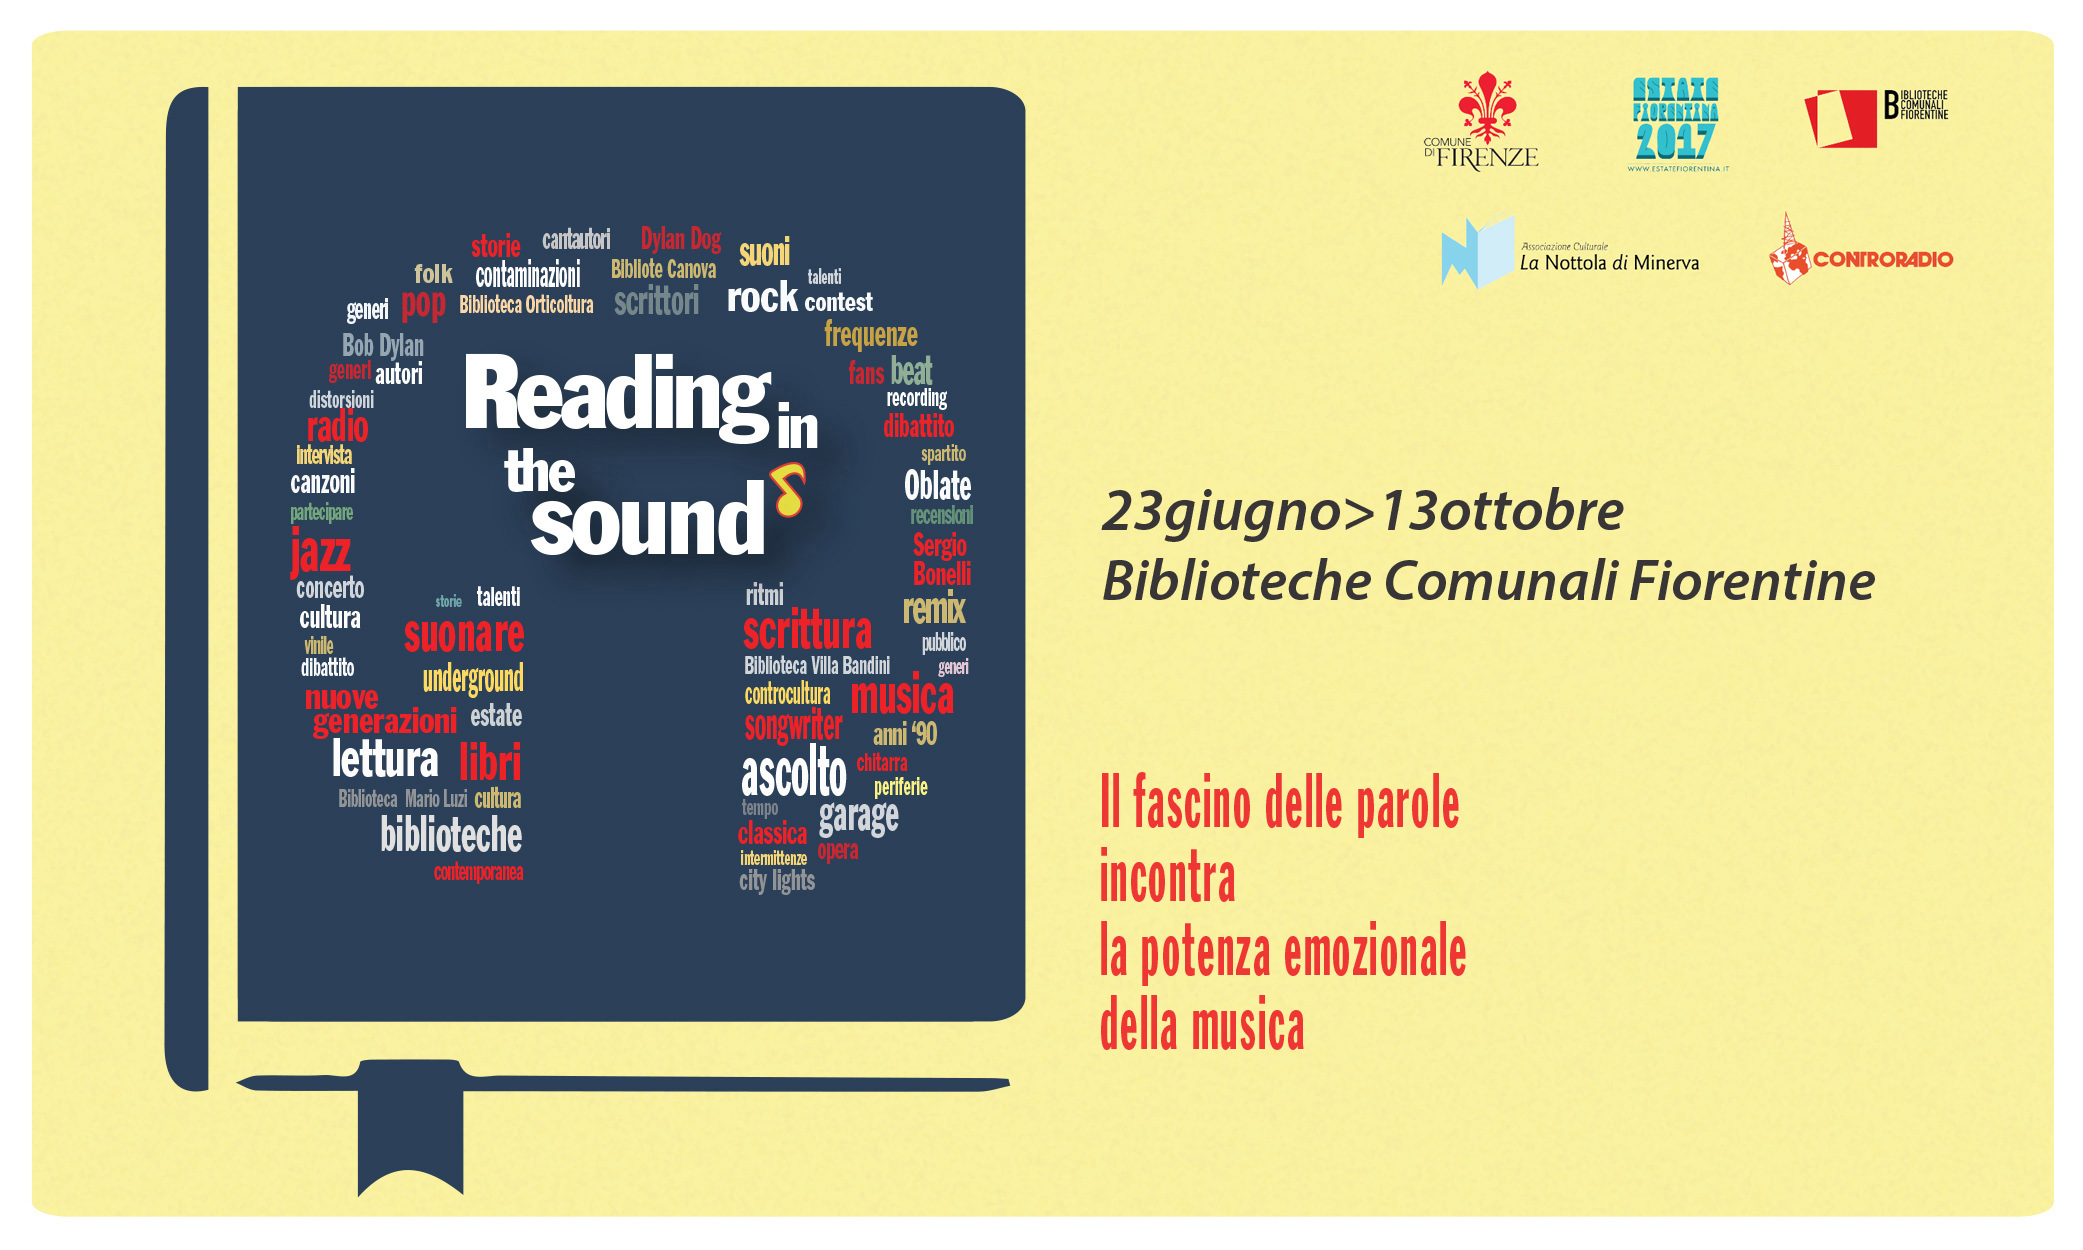 Reading in the sound